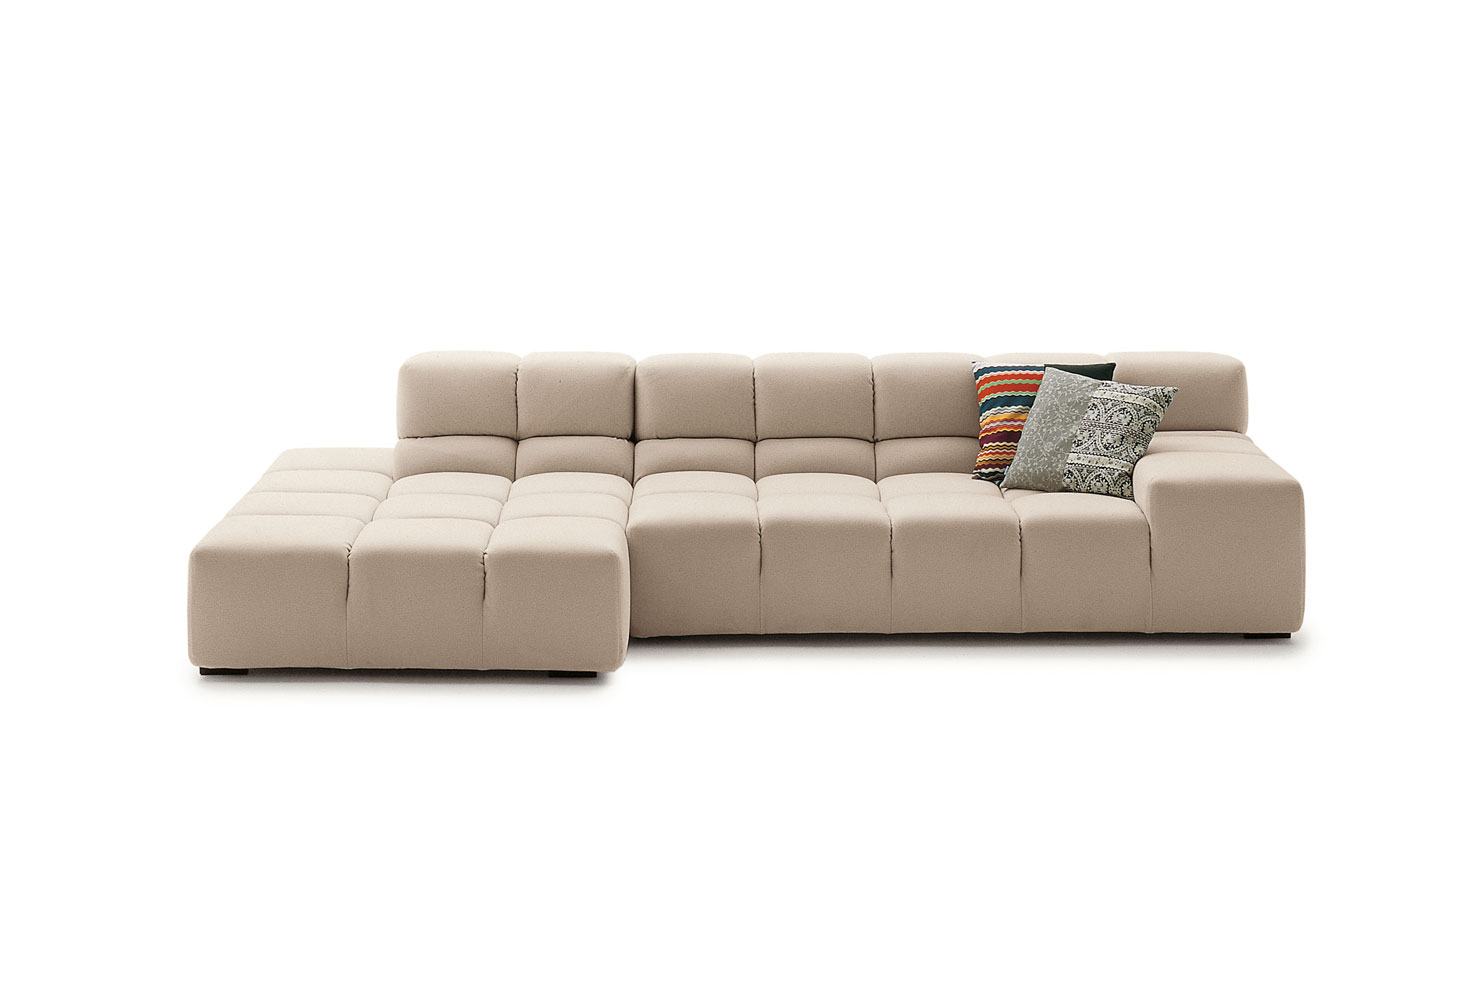 Tremendous Bb Italia Tufty Time Sofa Buy From Campbell Watson Uk Beutiful Home Inspiration Cosmmahrainfo